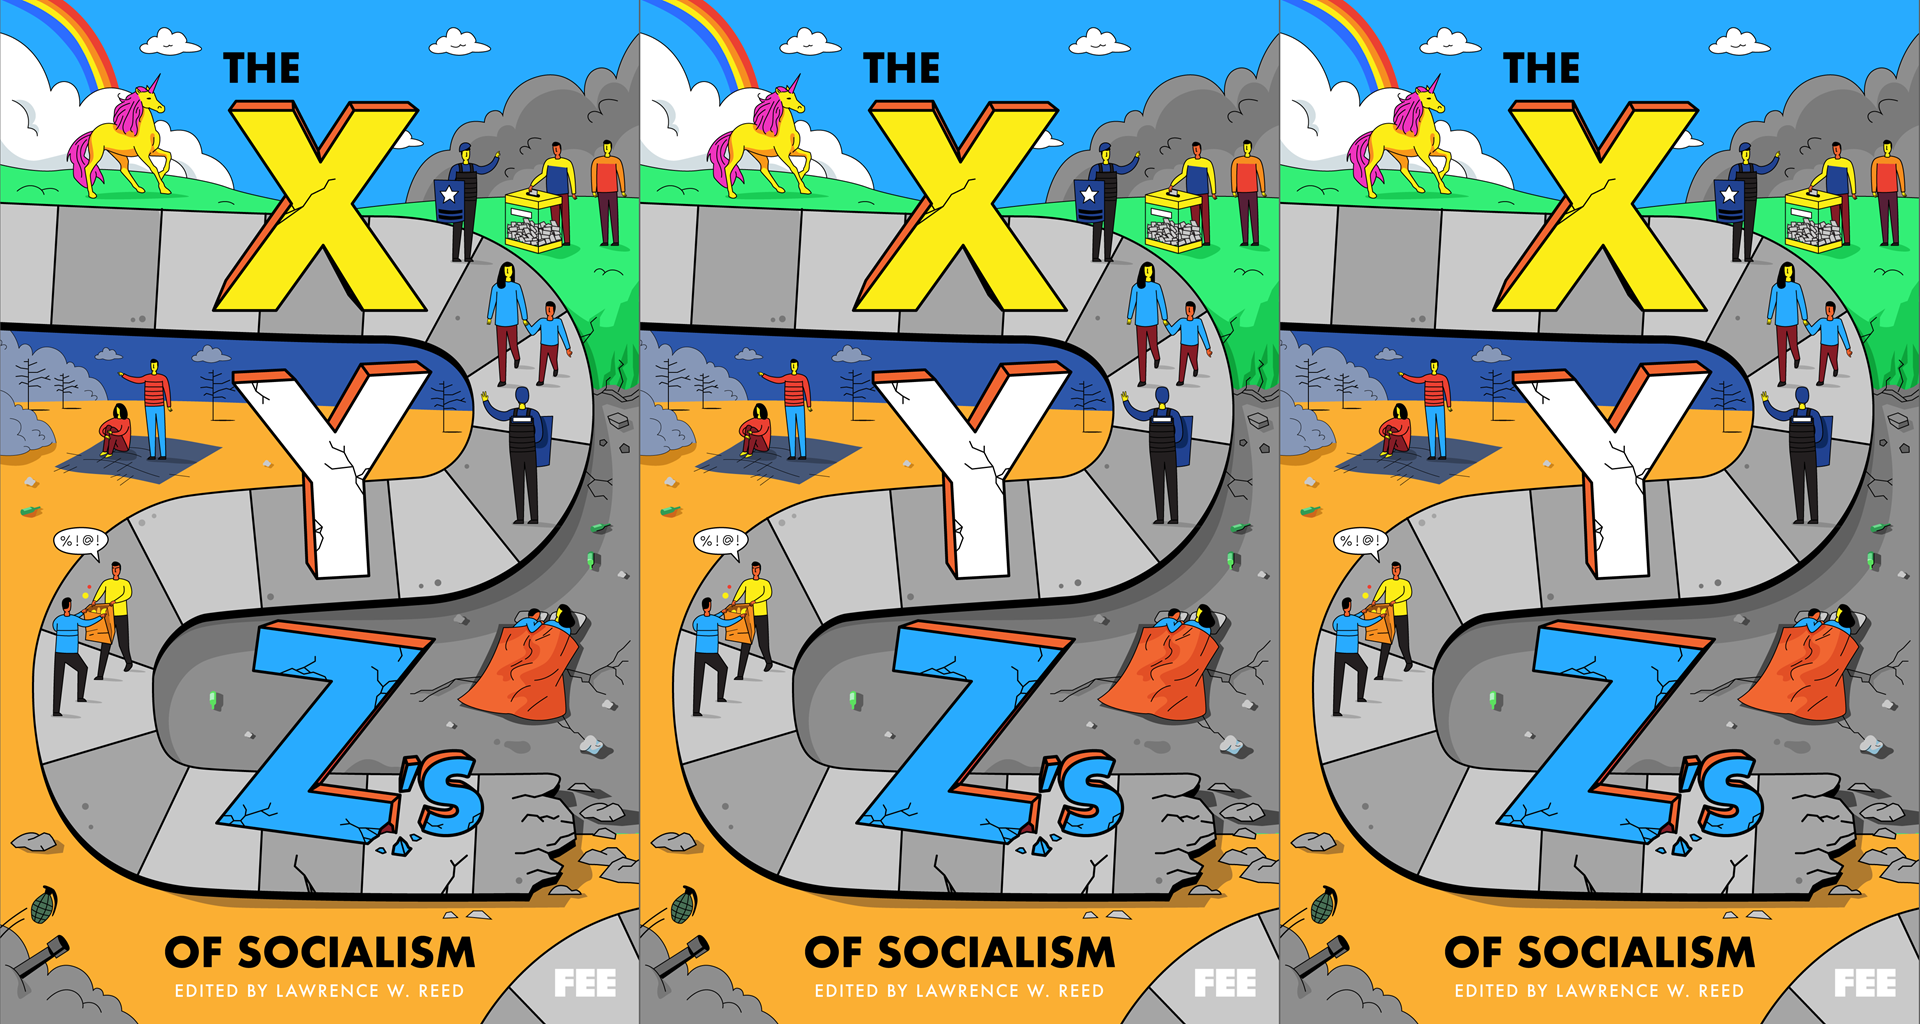 The Xyzs Of Socialism Foundation For Economic Education